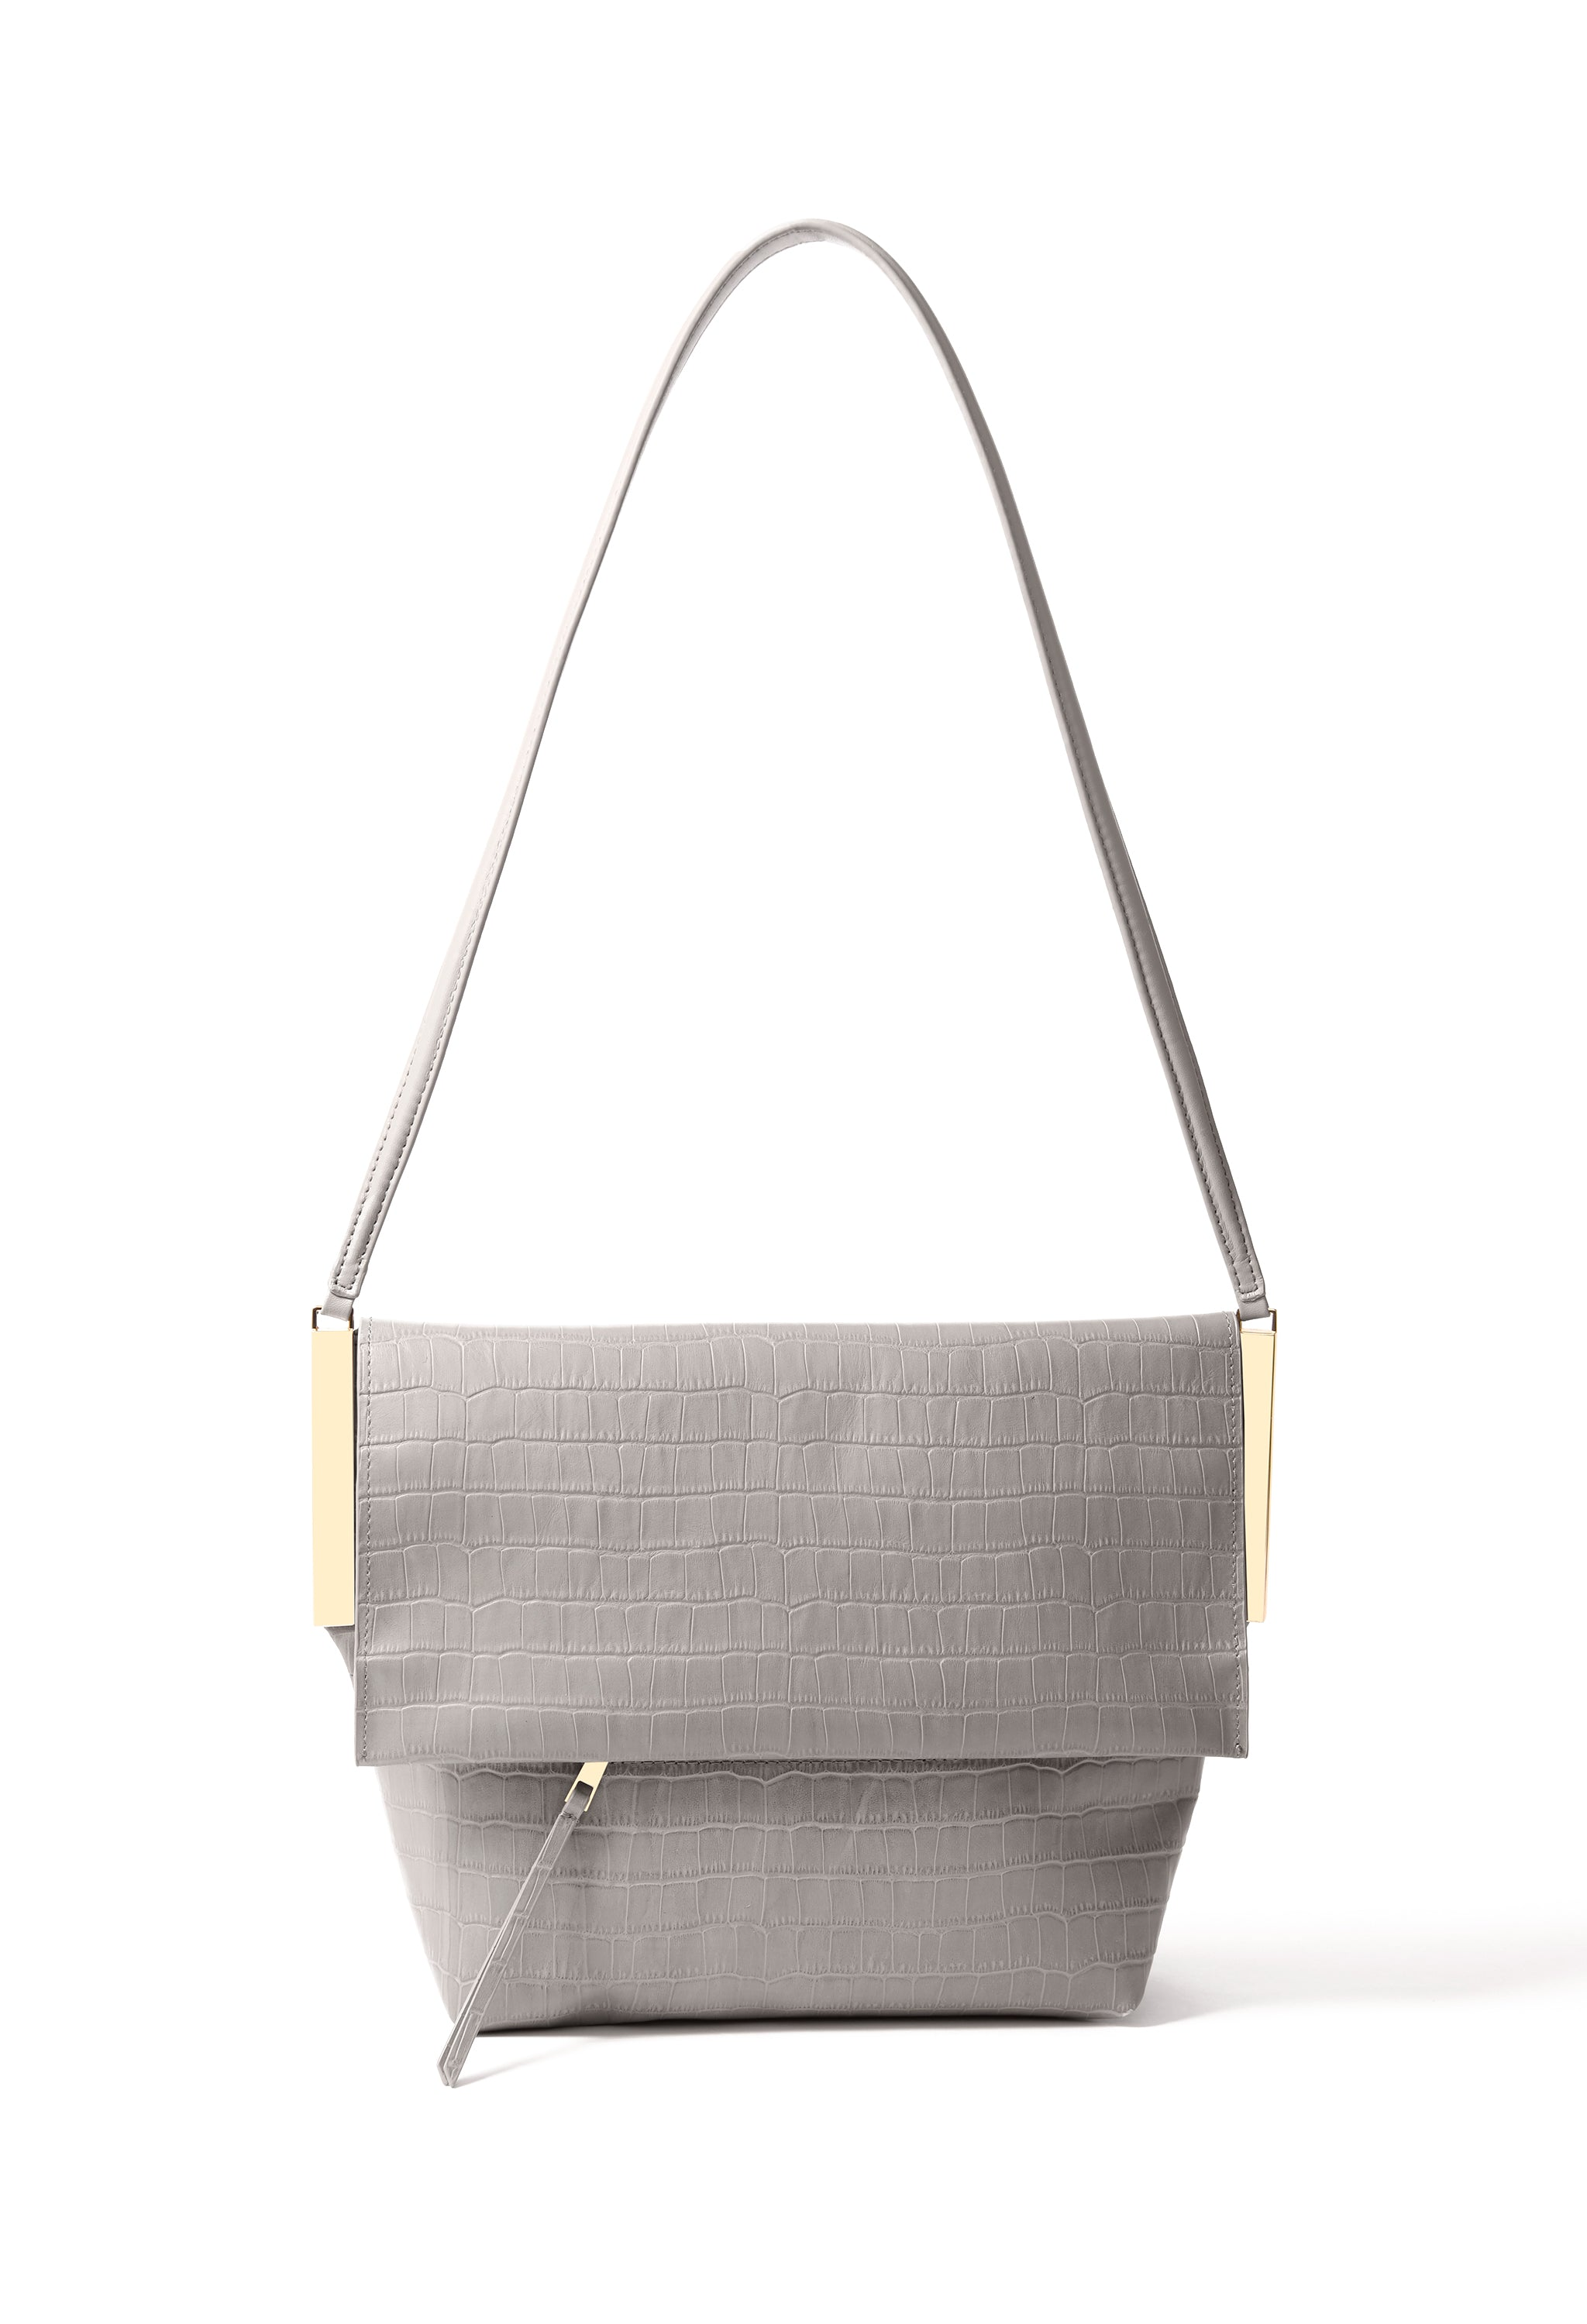 Giselle Bag in croco embossed leather, Gray